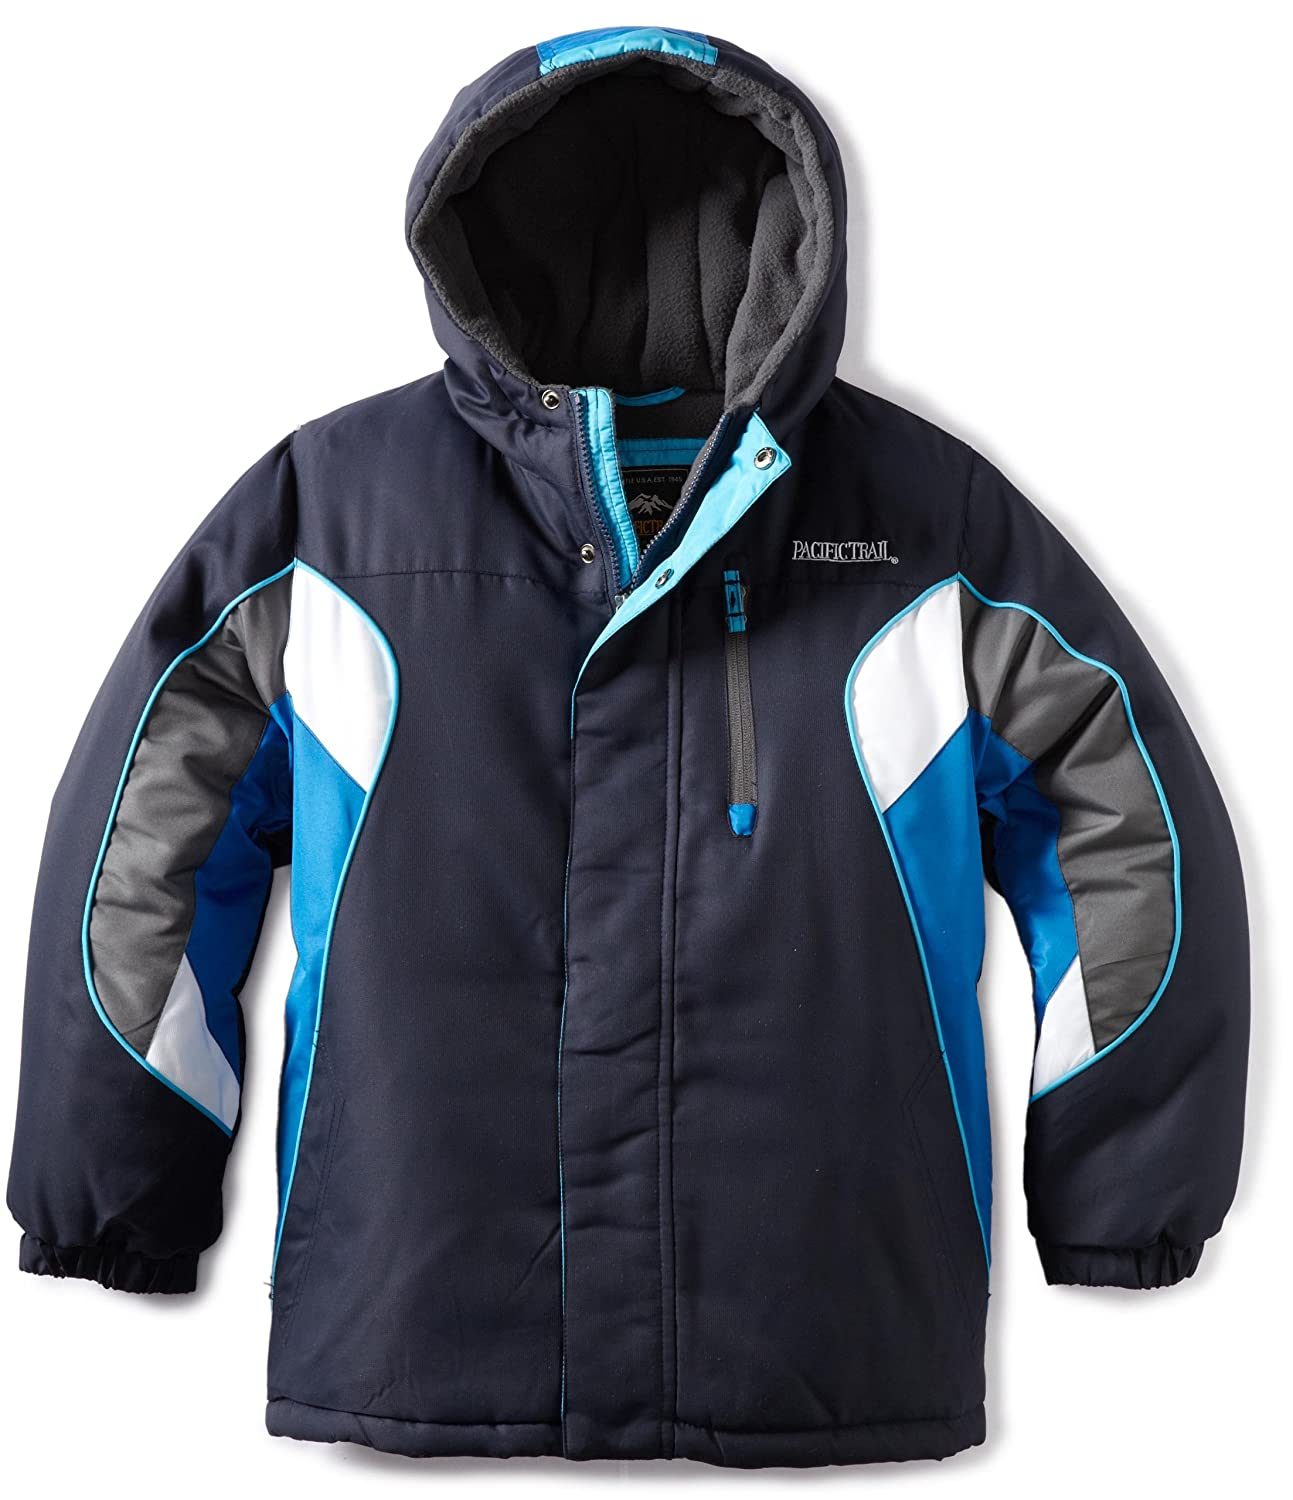 154a09084a5 Jackets & Coats Pacific Trail Big Boys Heavy Weight Colorblocked Plaid Jacket  Pacific Trails Outerwear 2F2447B5 ...